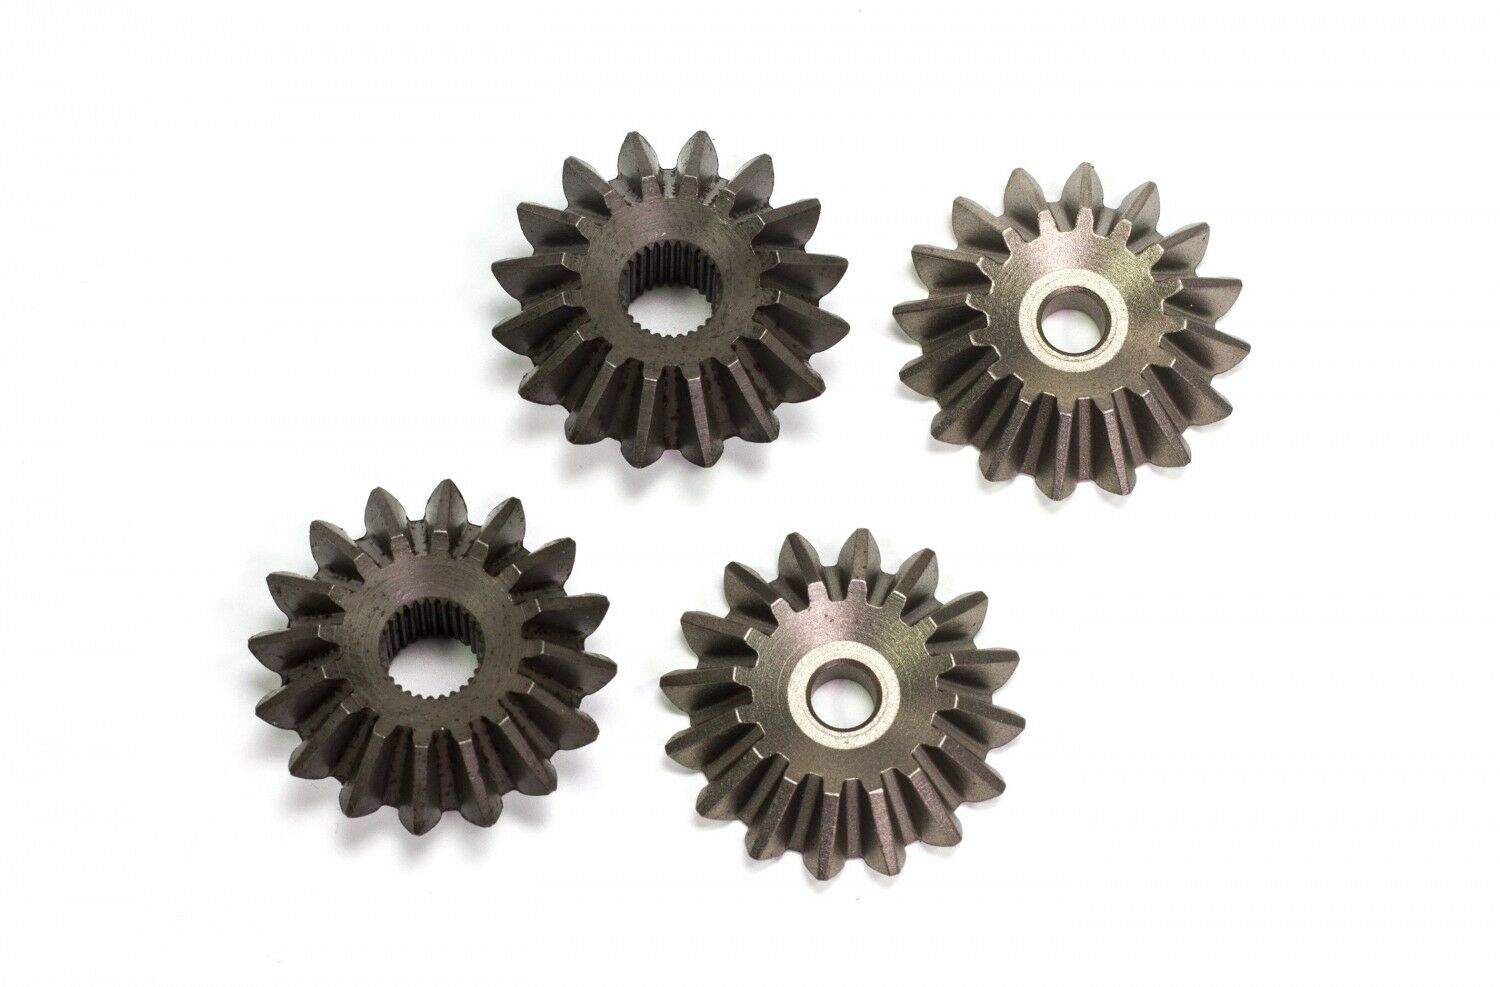 FG Differential Kegelzahnrad A B verstärkt - Set - 6070 - Bevel diff. gearwheel